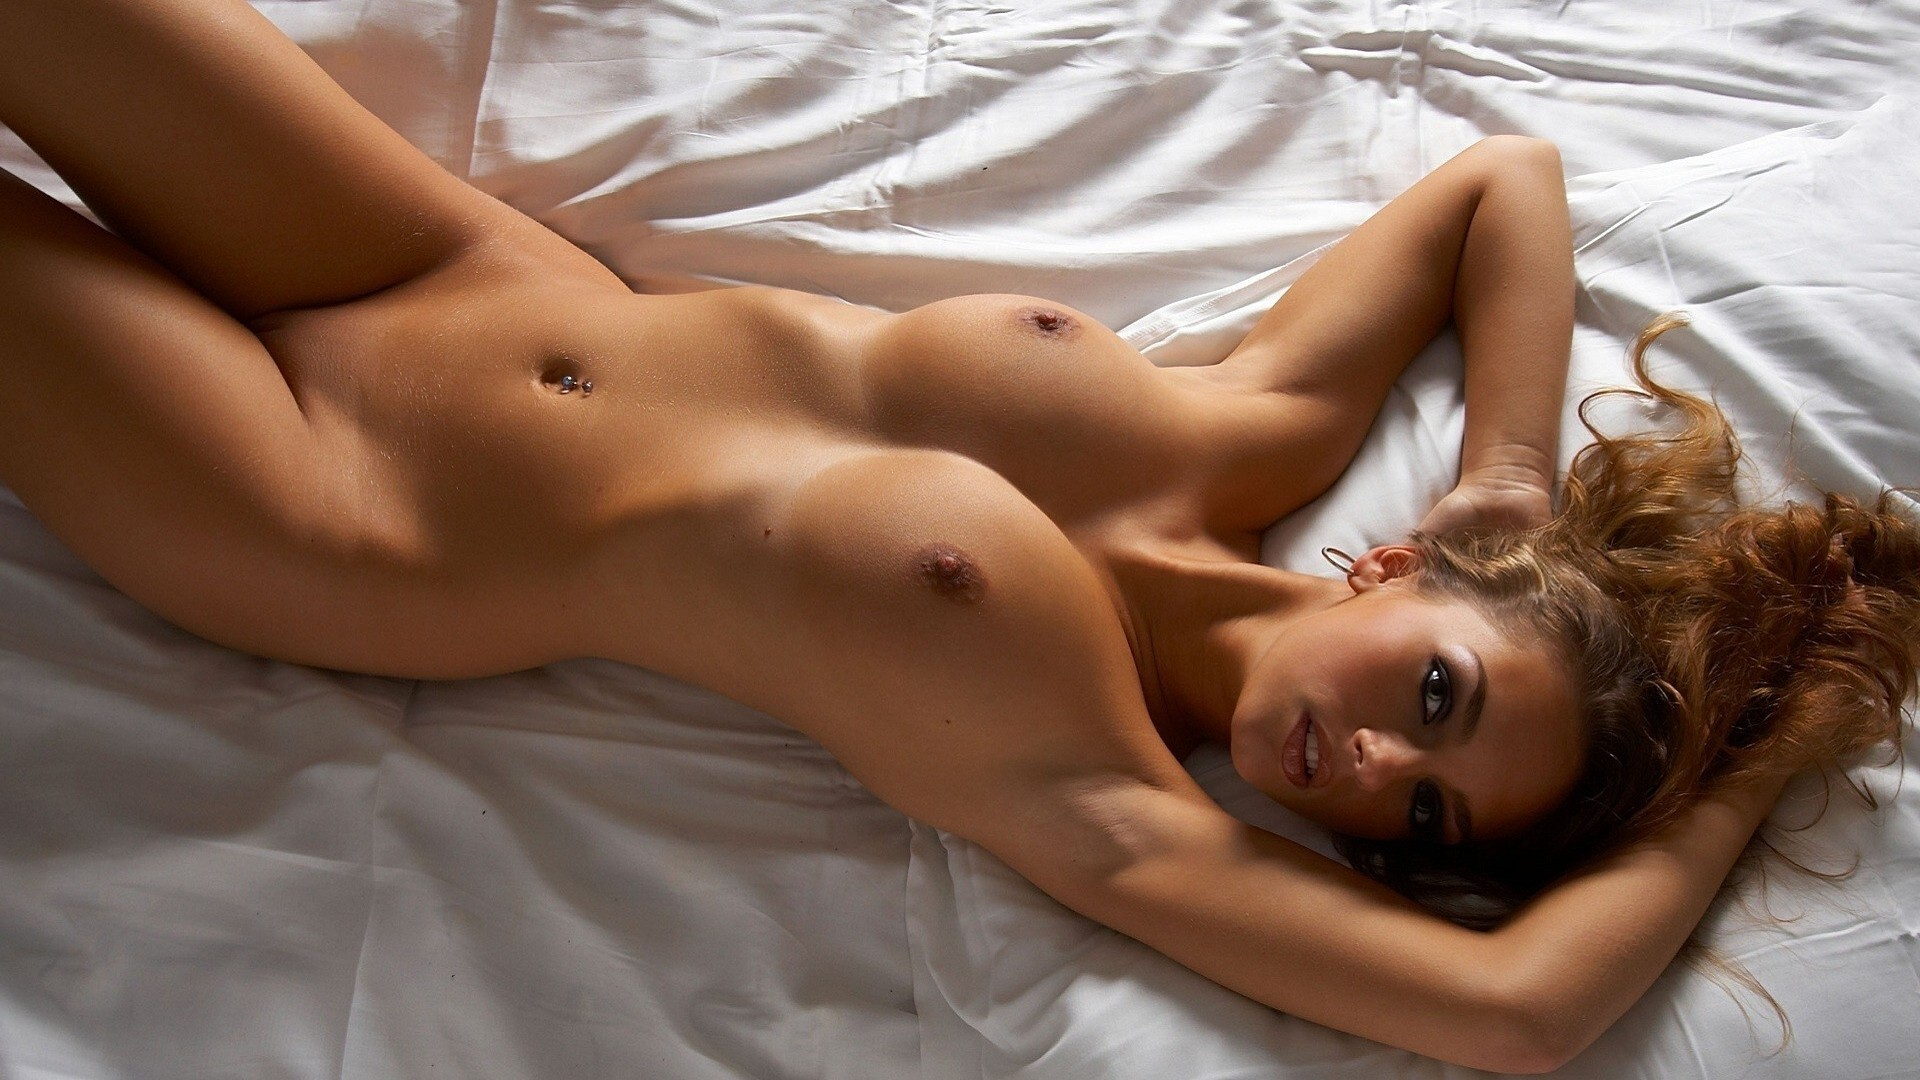 sexy pretty nude flexible women